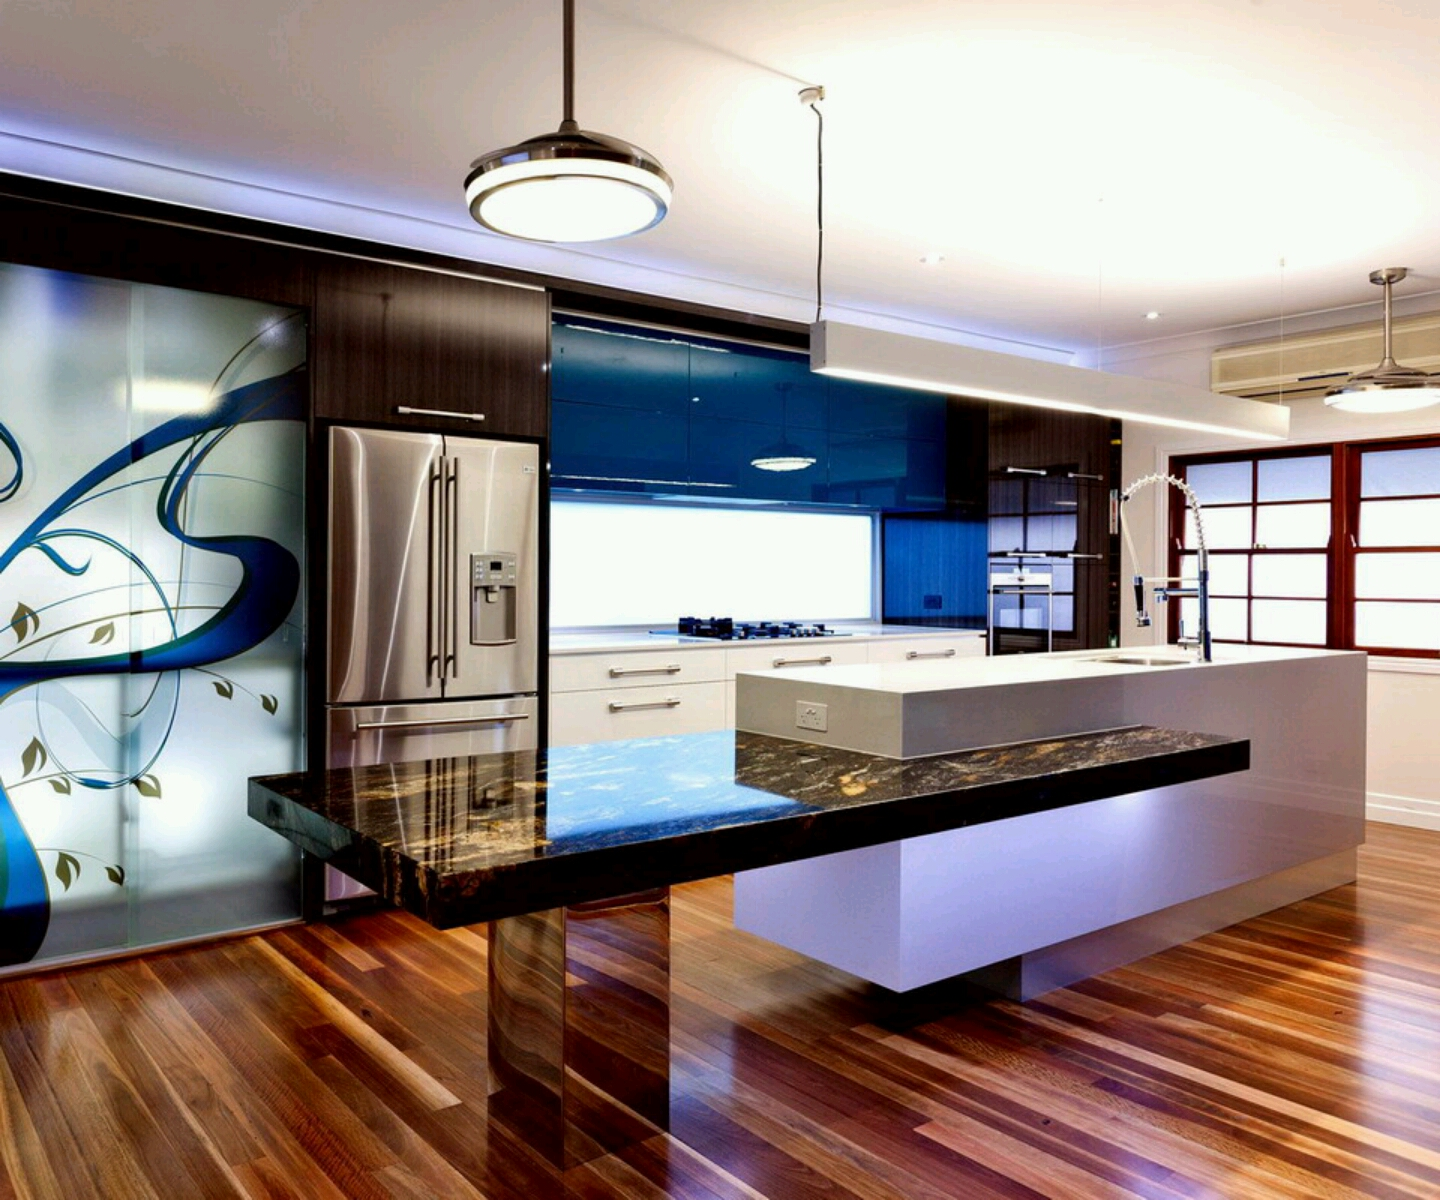 Ultra modern kitchen designs ideas new home designs Kitchen design blogs 2014